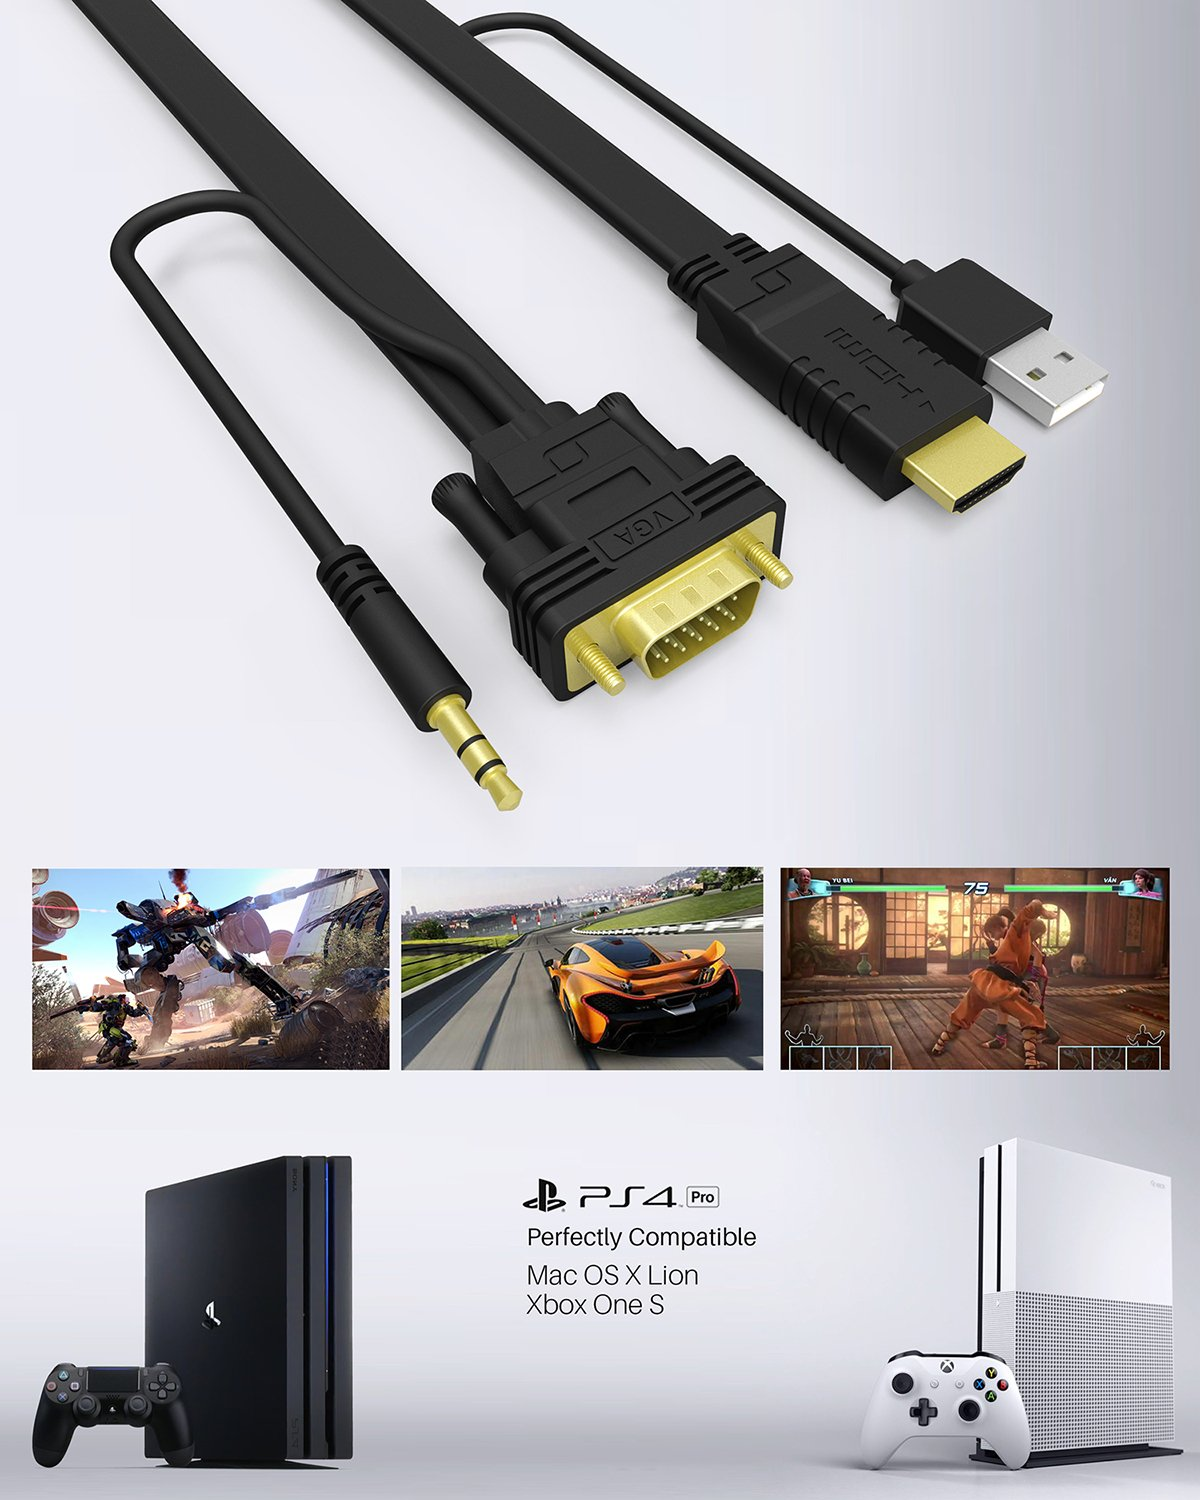 NewBEP HDMI to VGA Cable Adapter with Audio Cord and USB, 1080P HD 6ft/1.8m HDMI Male to VGA Male Converter Cord Support Apple Mackbook Sony PS2 PS3 PS4 Xbox Notebook PC DVD Player Laptop TV by NewBEP (Image #6)